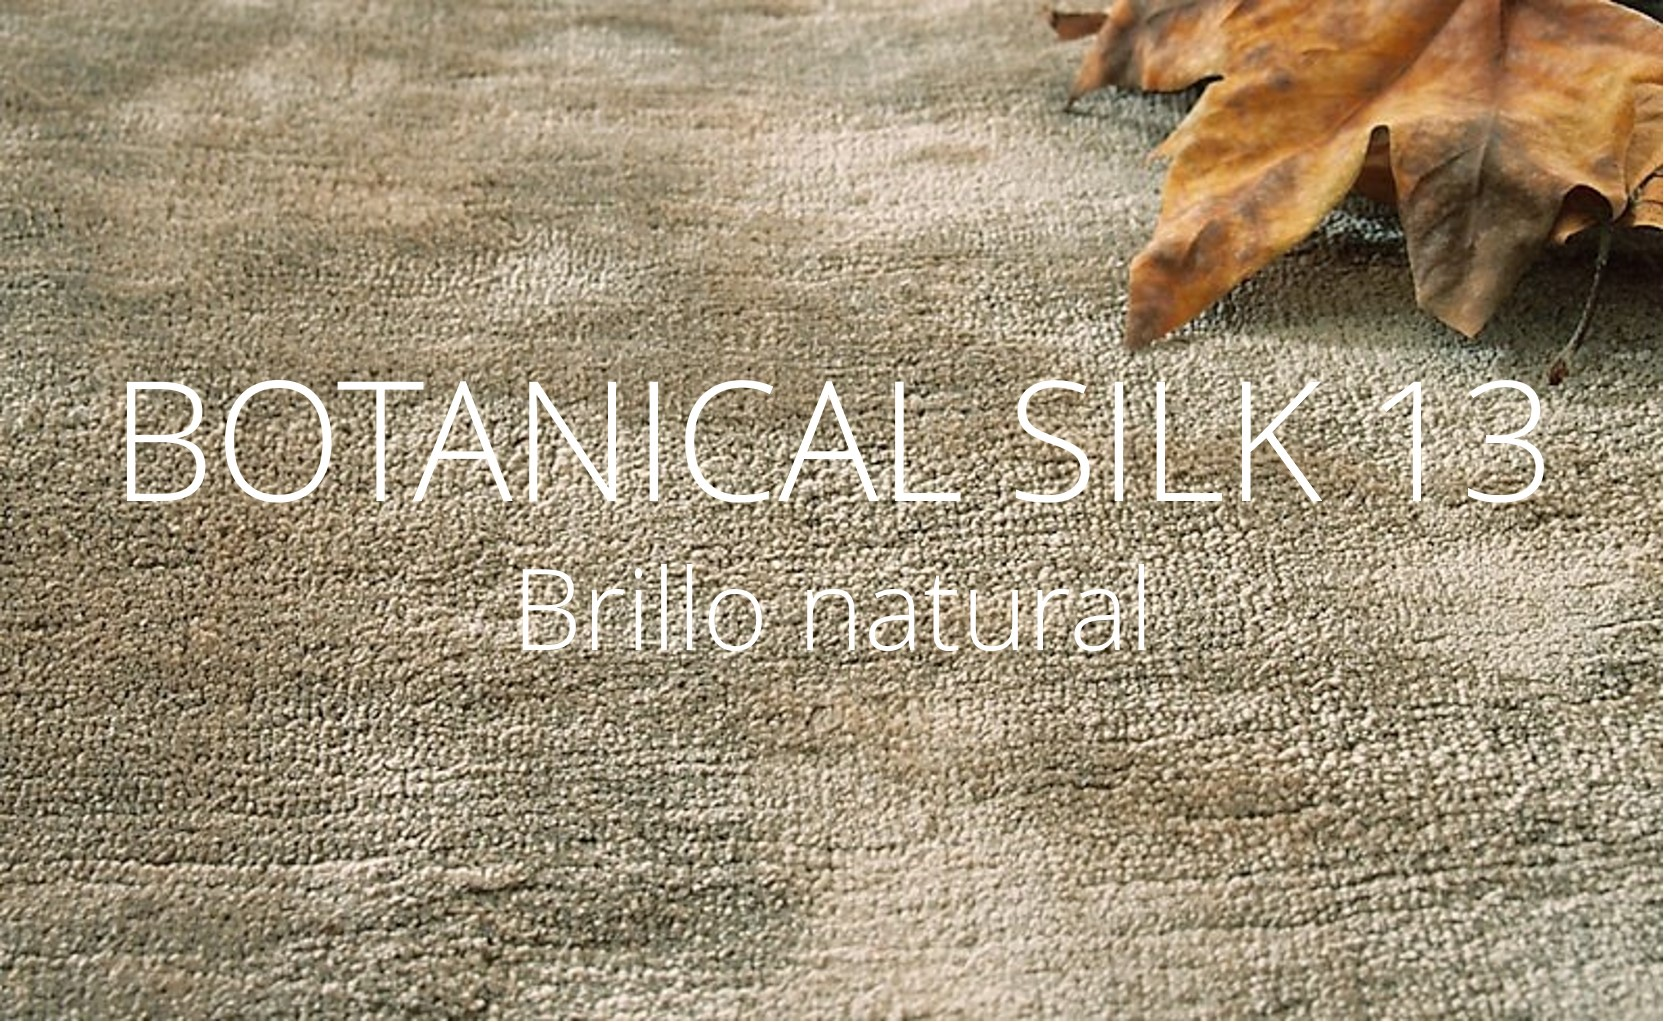 Alfombra a medida de botanical silk - brillo natural